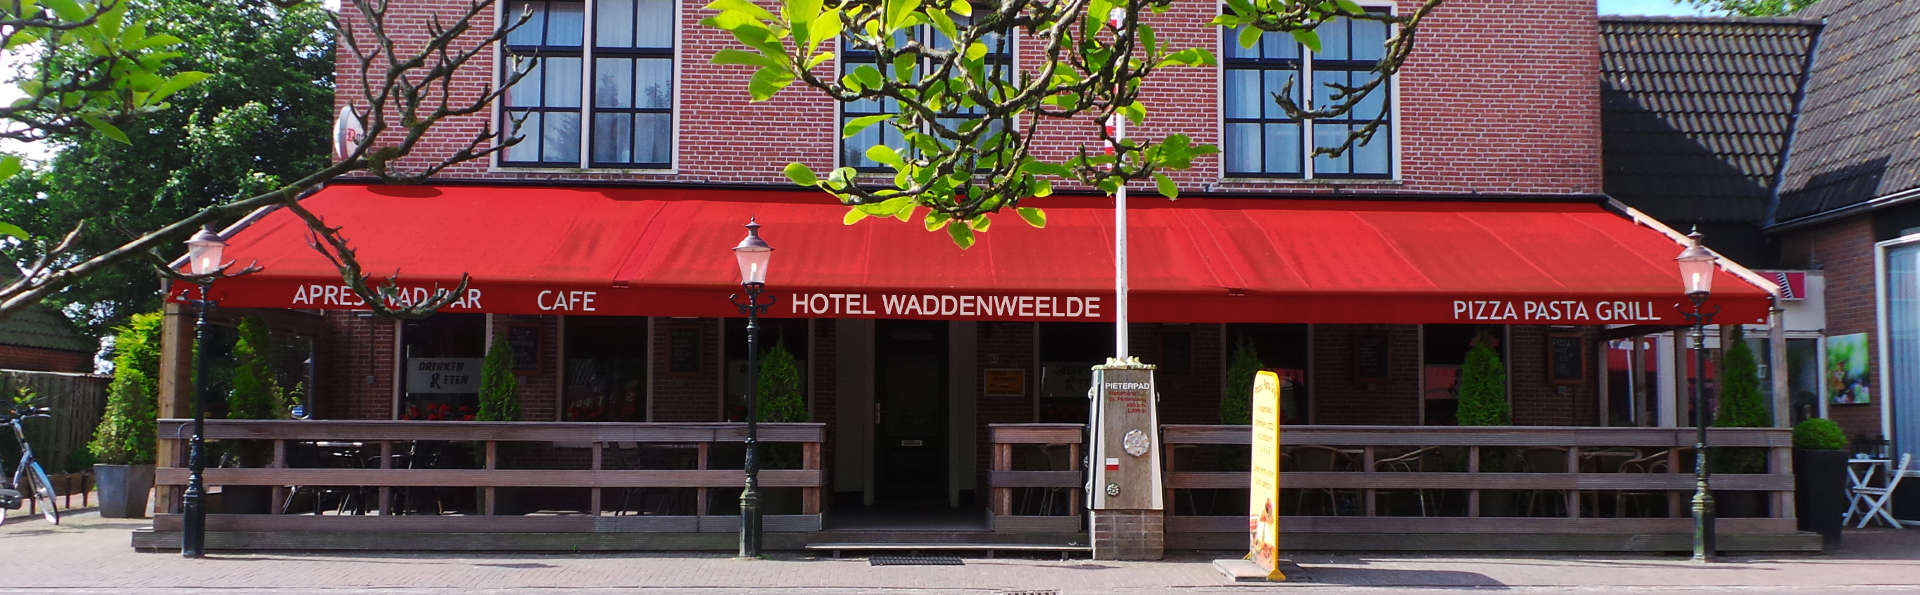 Hotel Waddenweelde  - EDIT_NEW_front.jpg